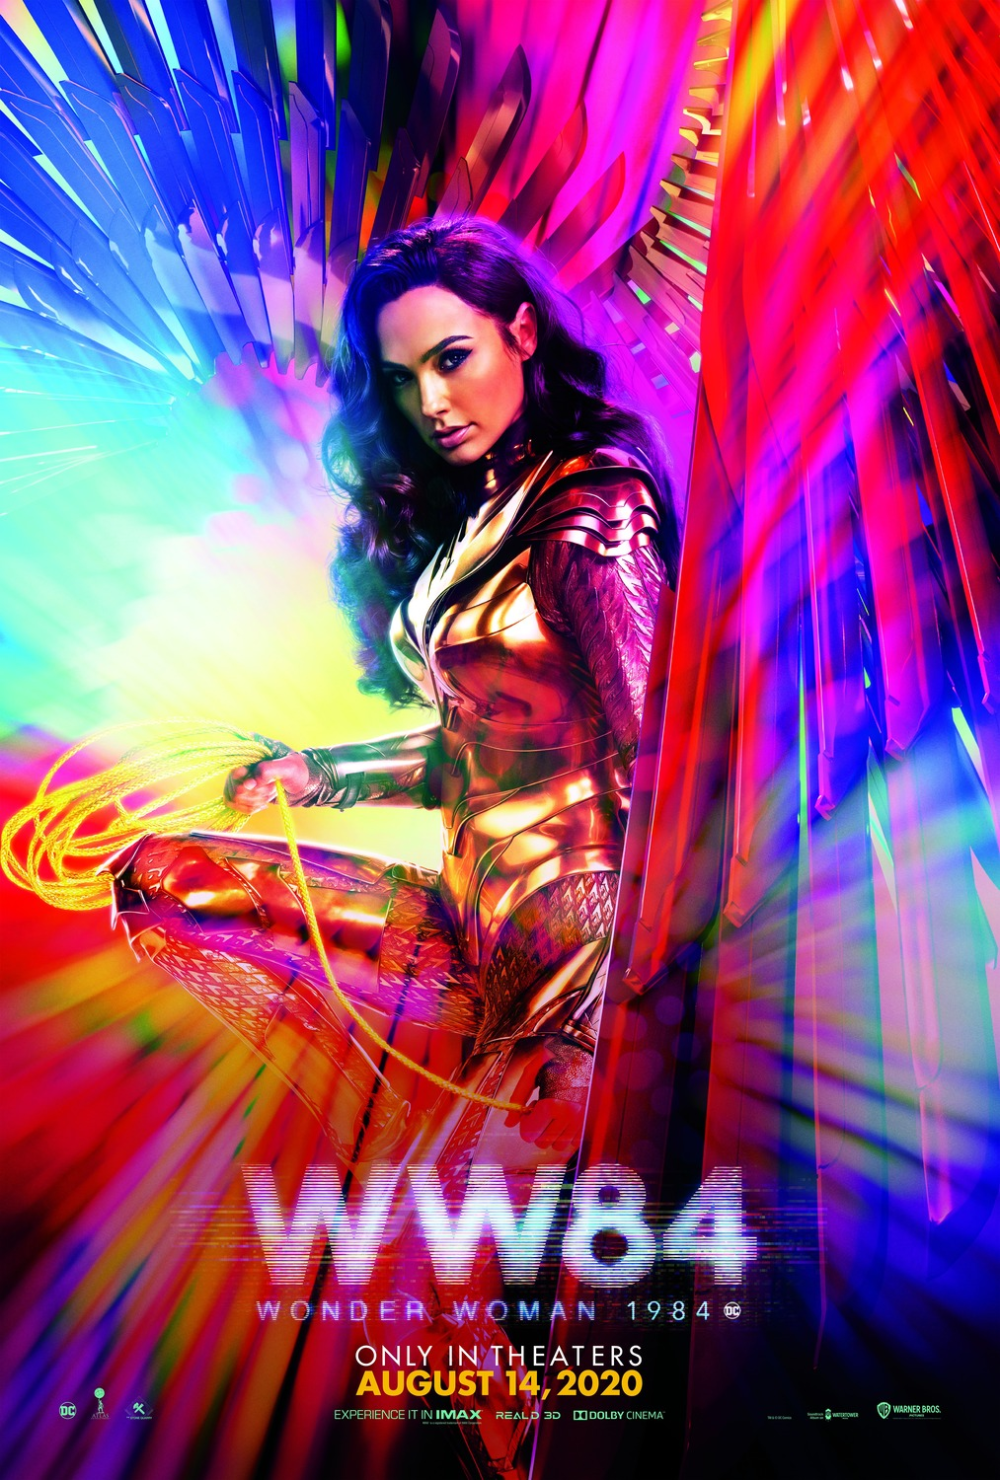 Return To The Main Poster Page For Wonder Woman 1984 7 Of 10 In 2020 Wonder Woman Wonder Women